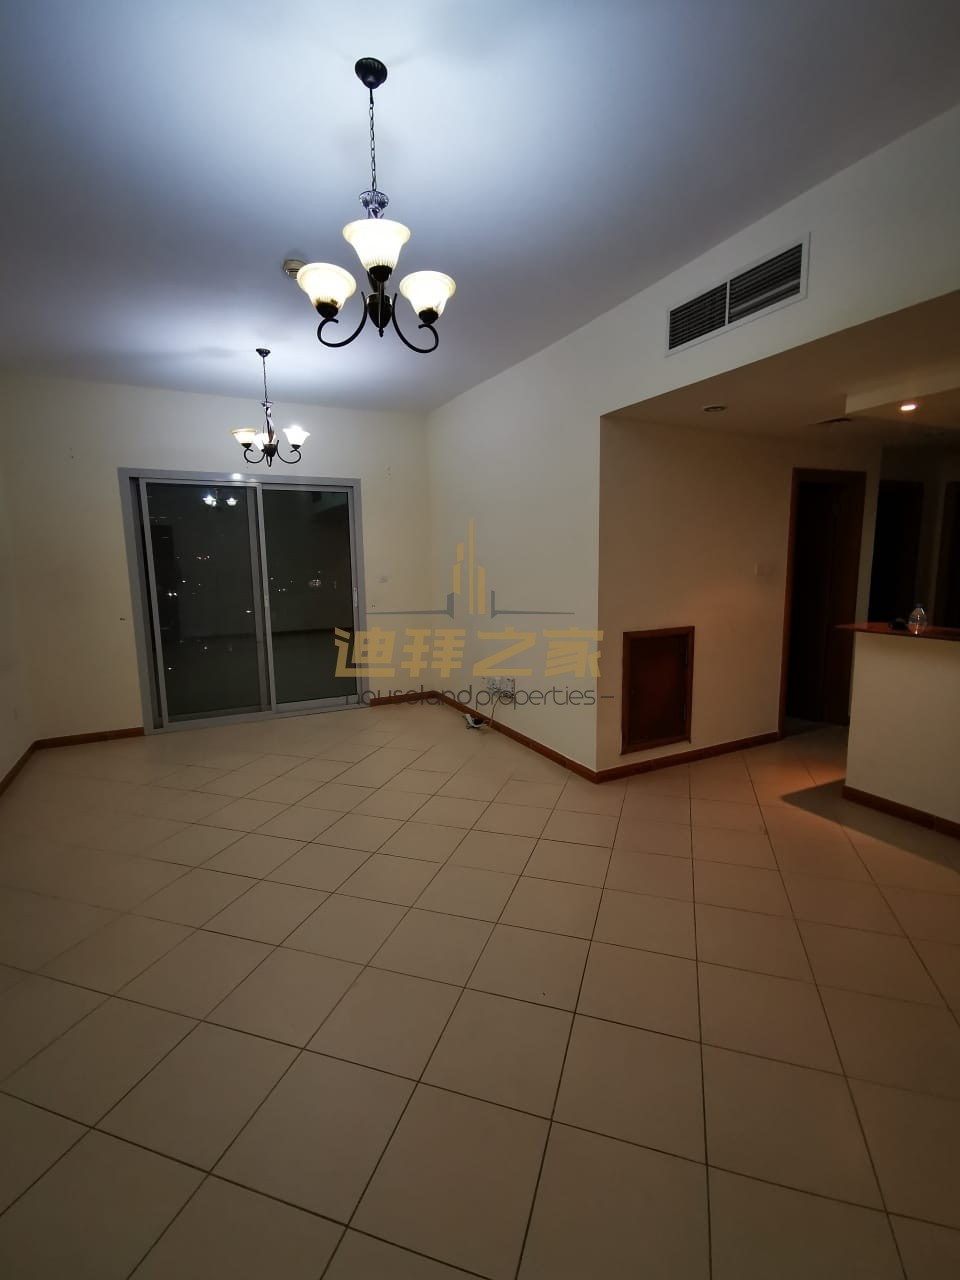 Prime Location | Spacious Unfurnished | Ready To Move In